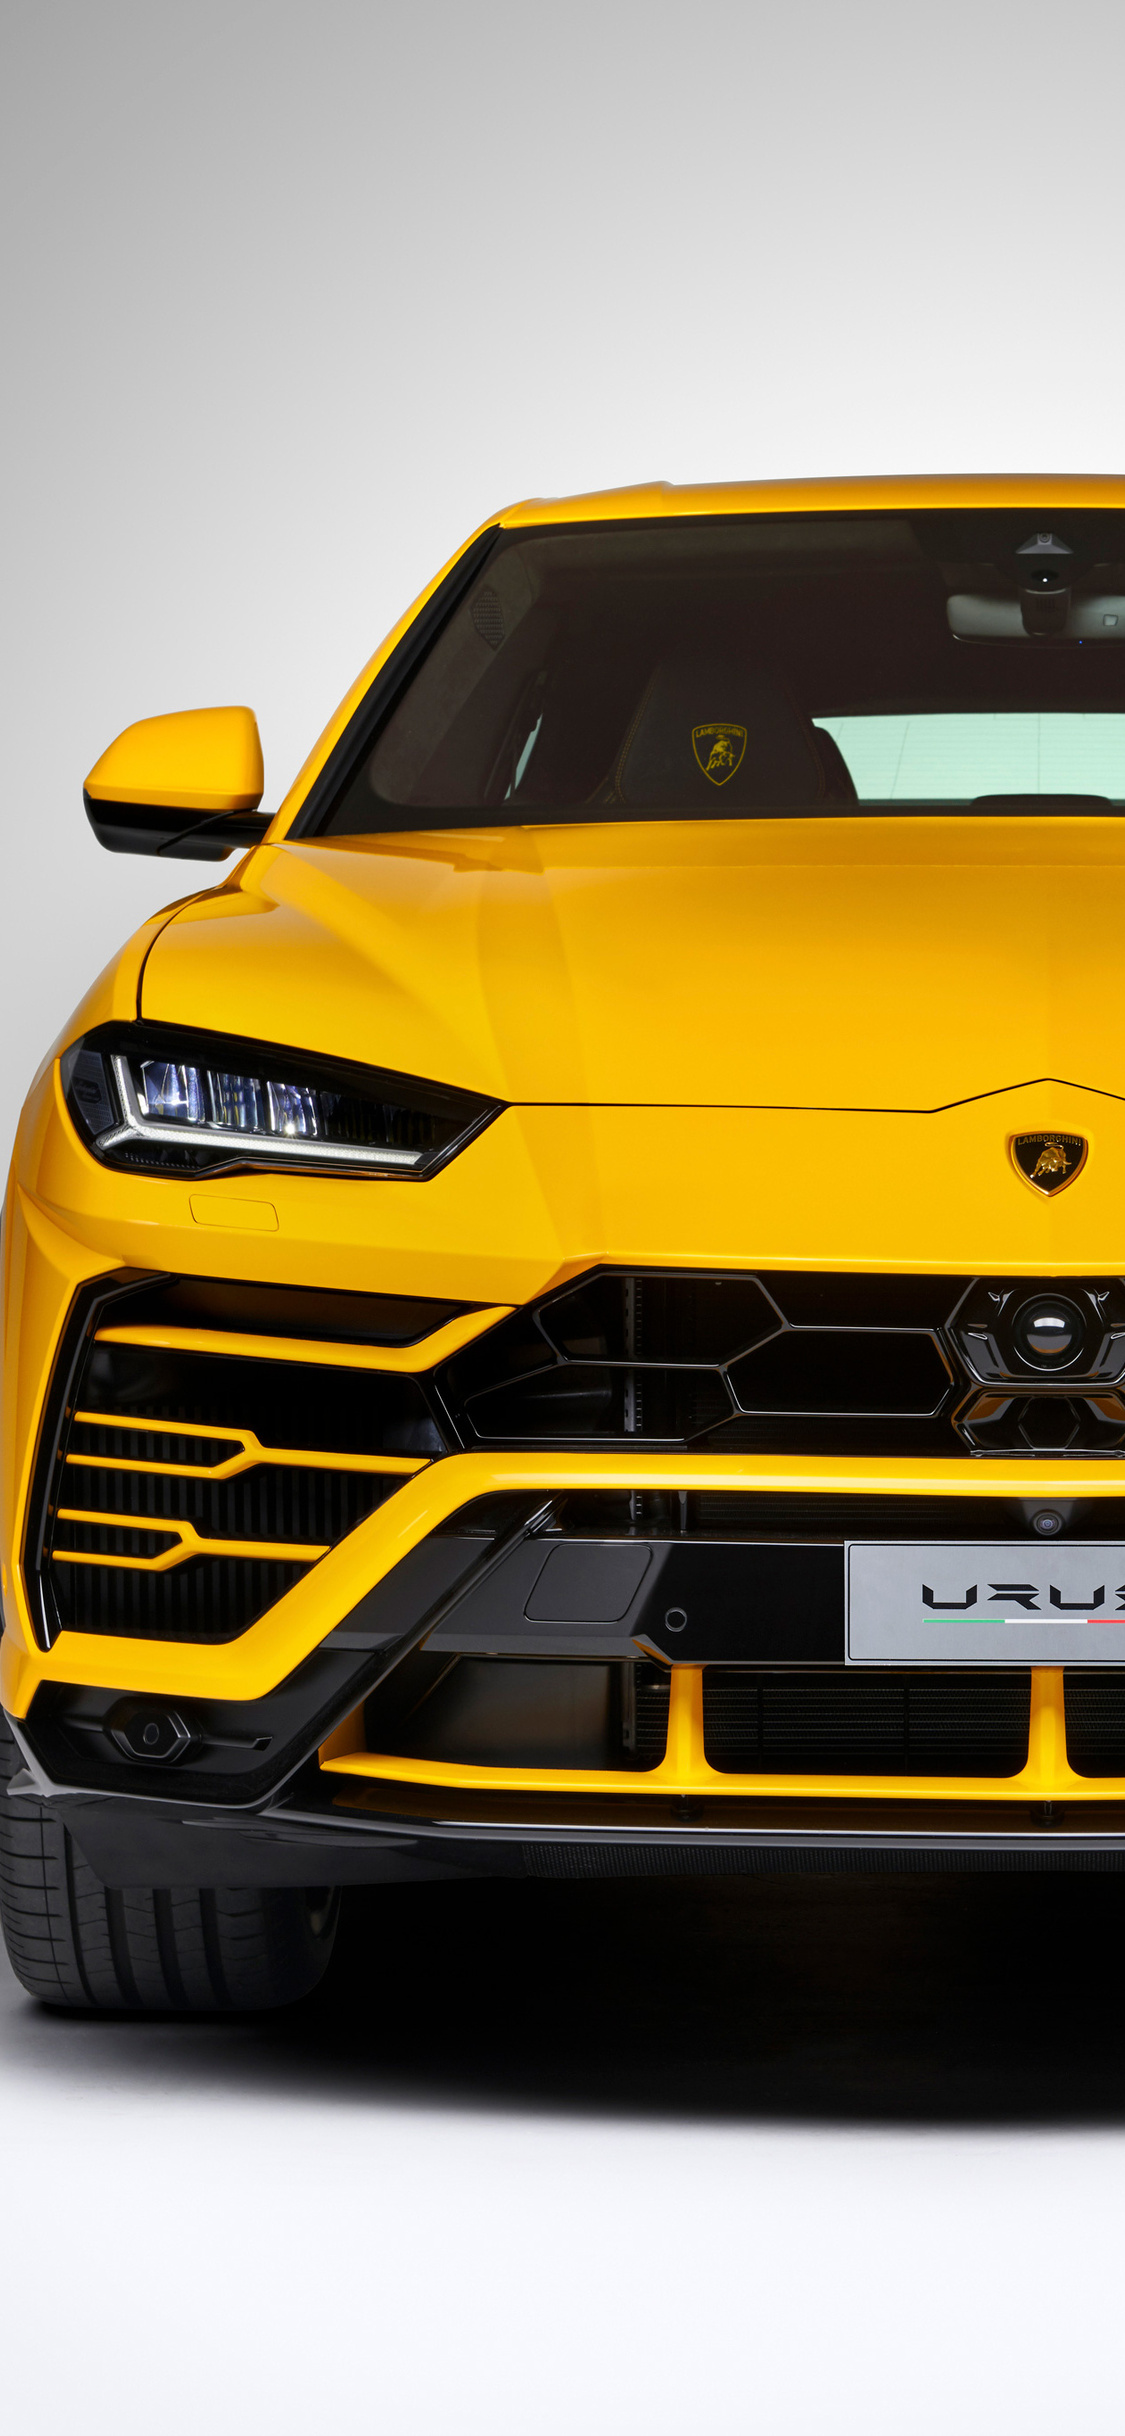 1125x2436 lamborghini urus front view iphone x,iphone 10 hd 4k